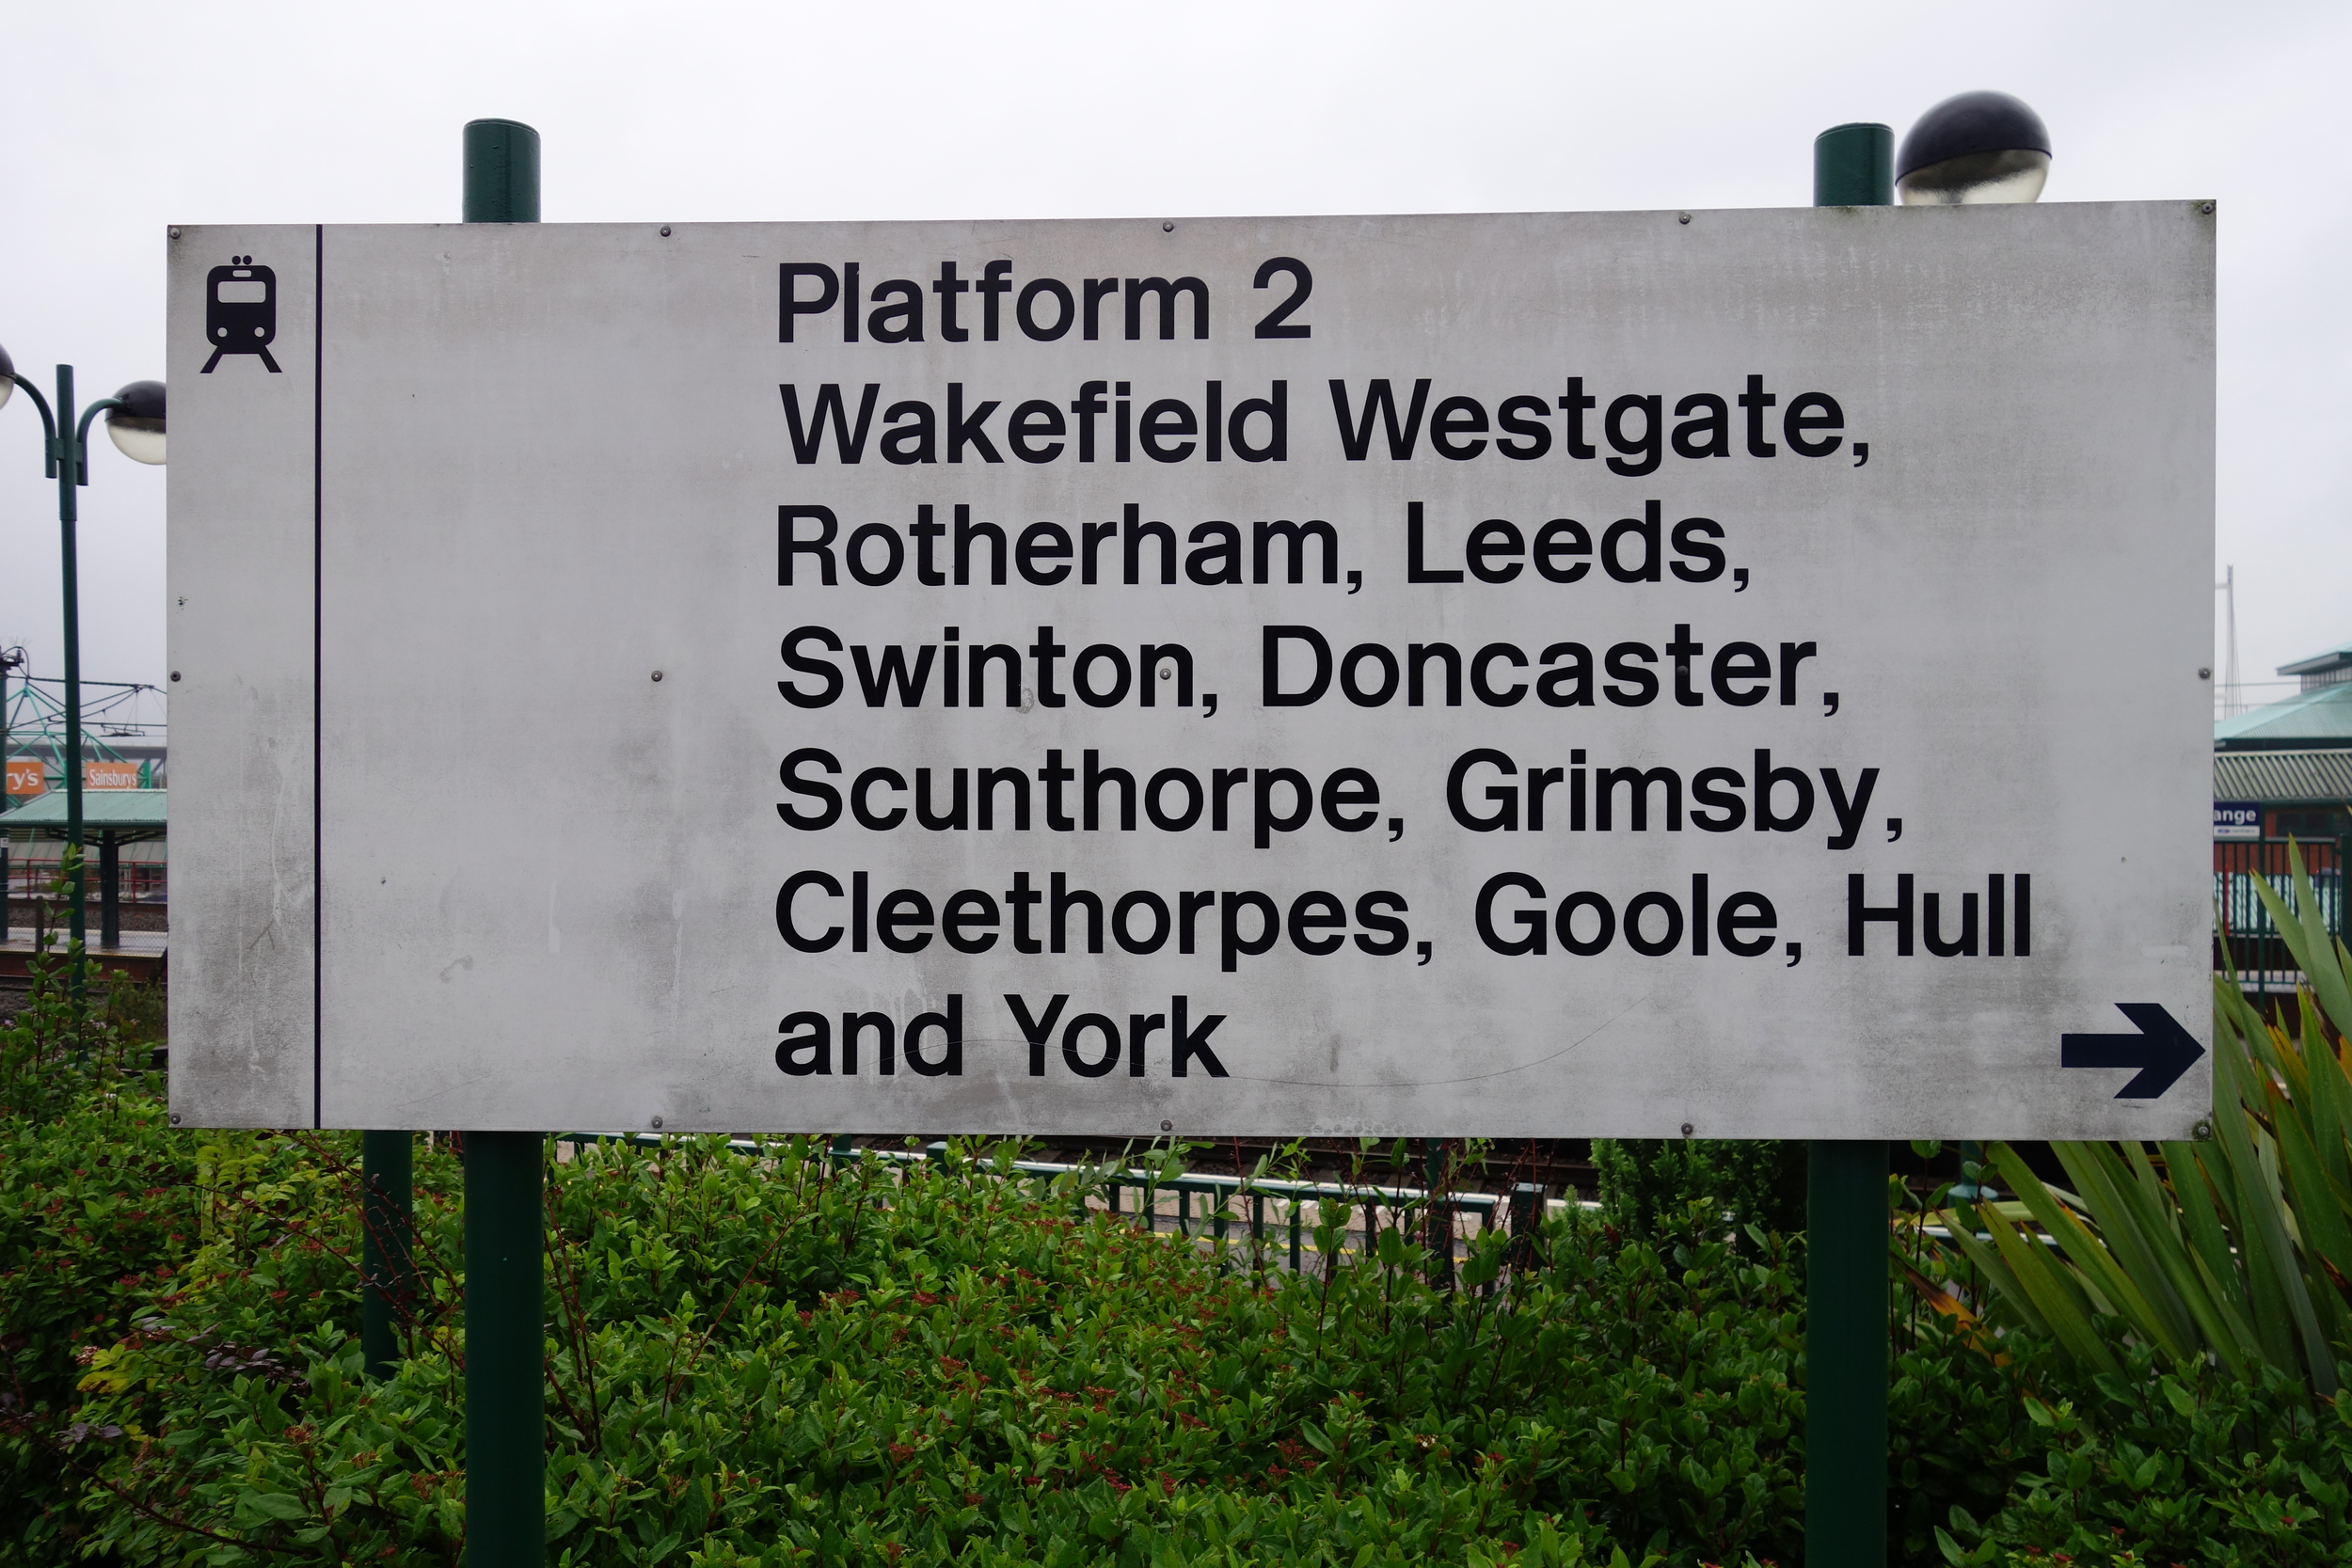 Yorkshire placenames really are the best placenames.